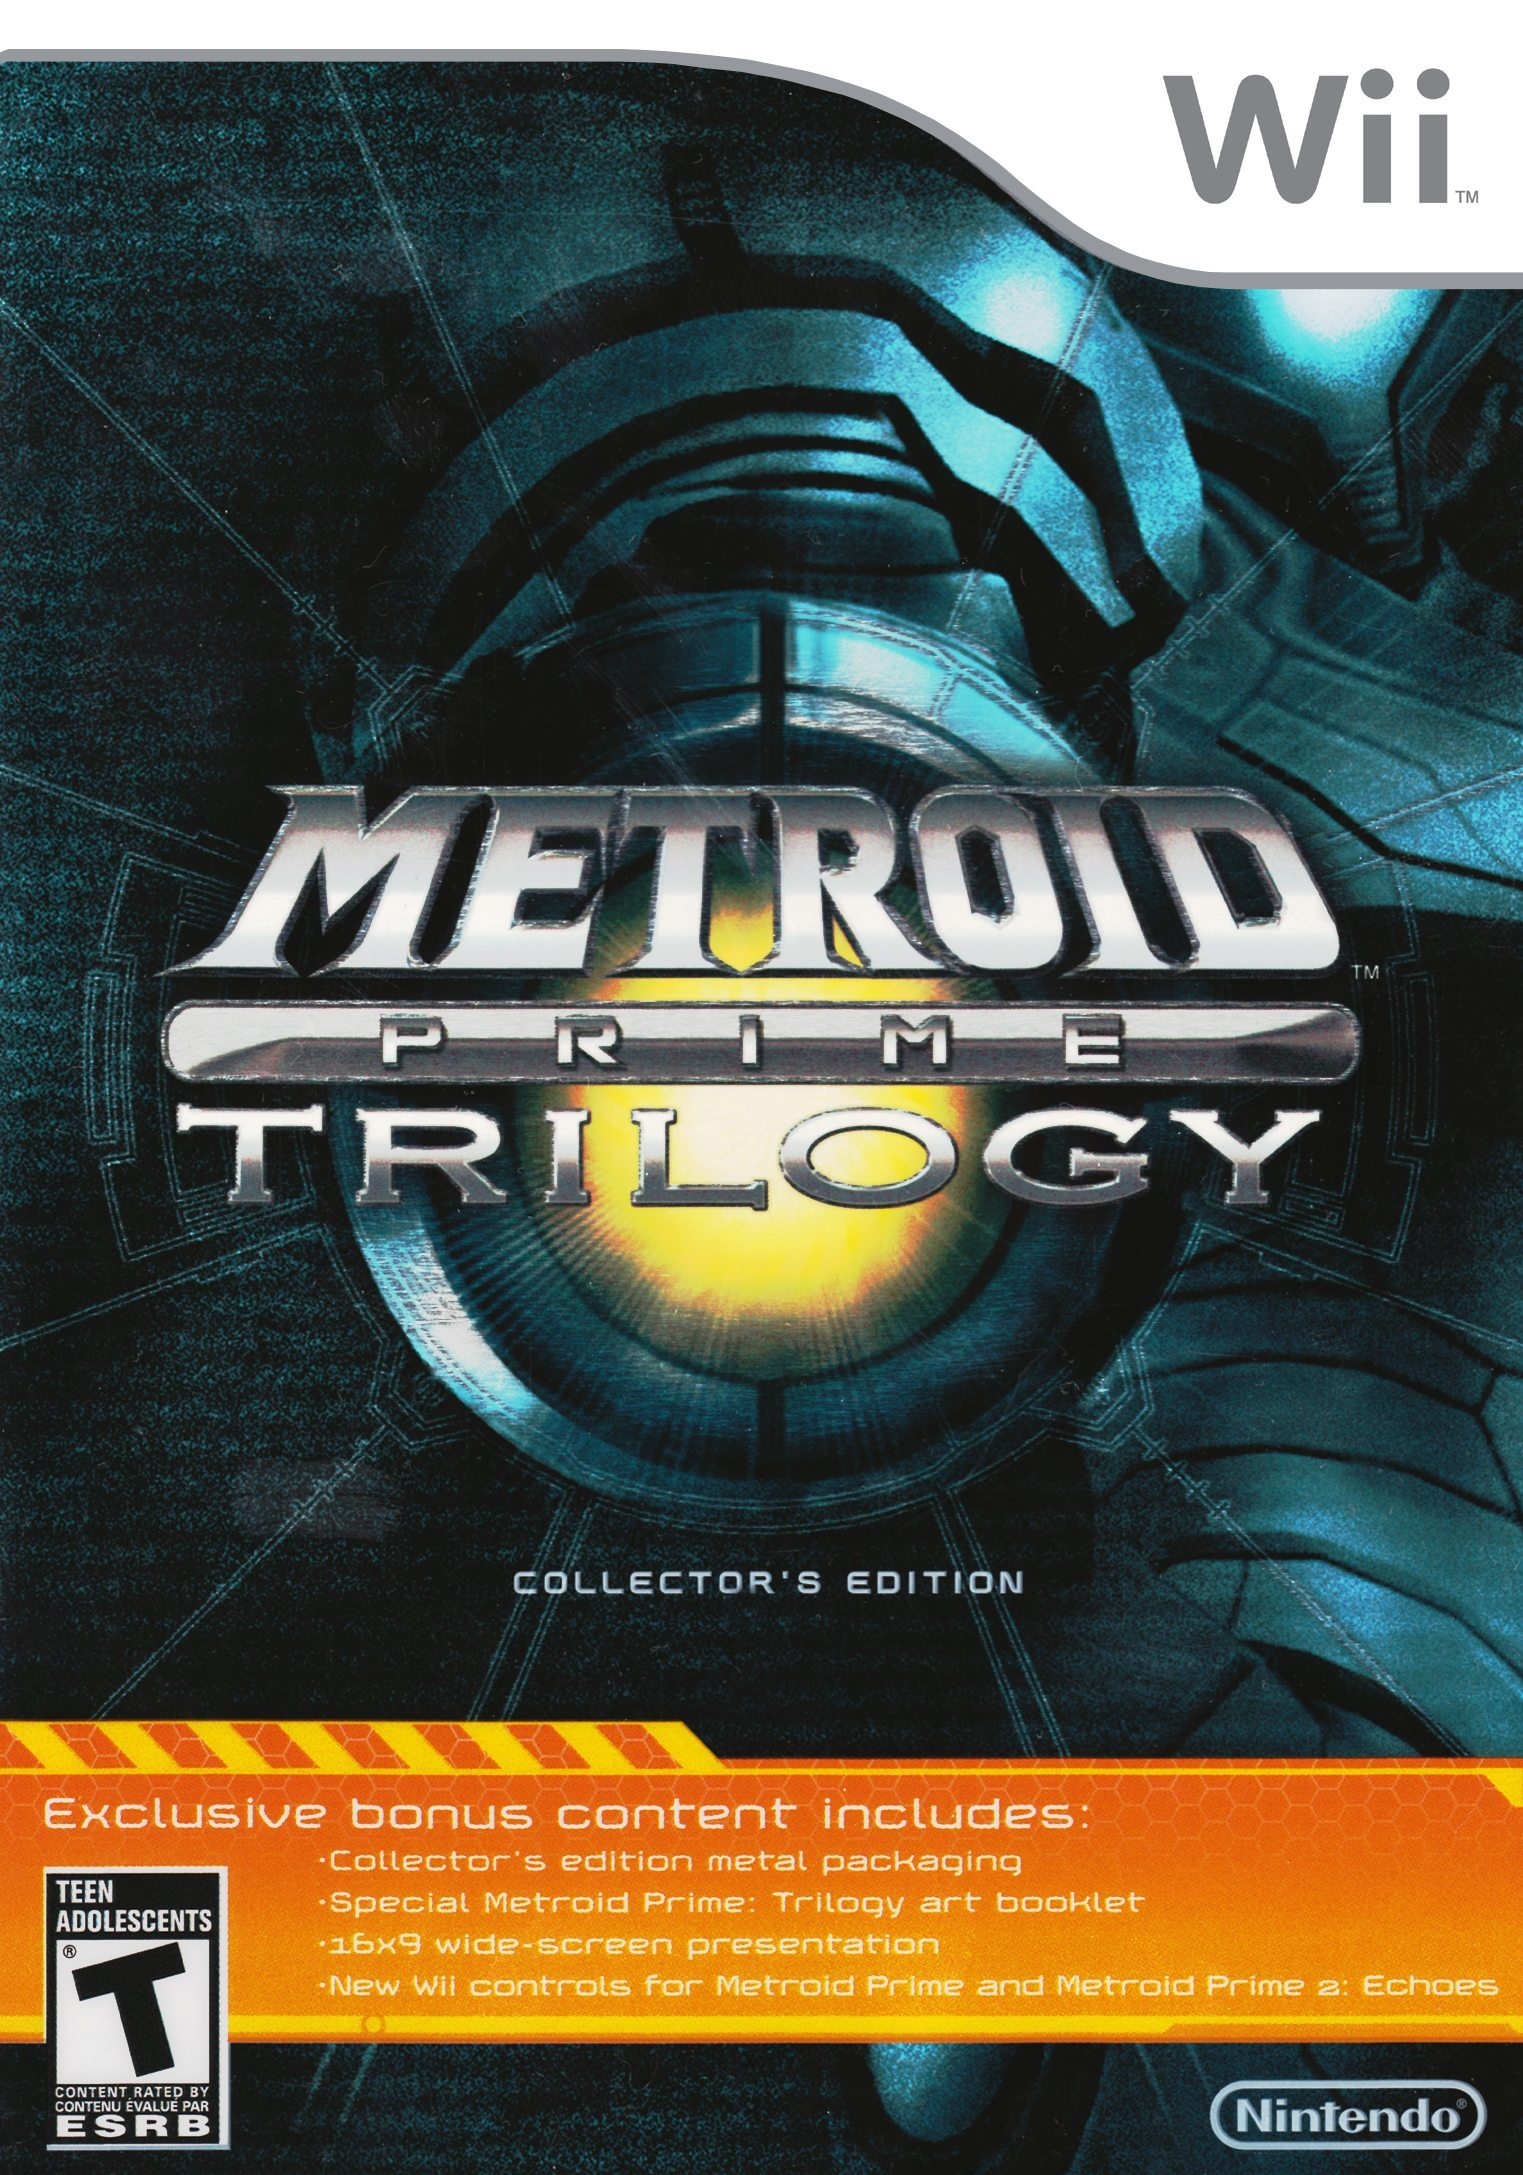 Metroid Prime Trilogy Collector's Edition/Wii